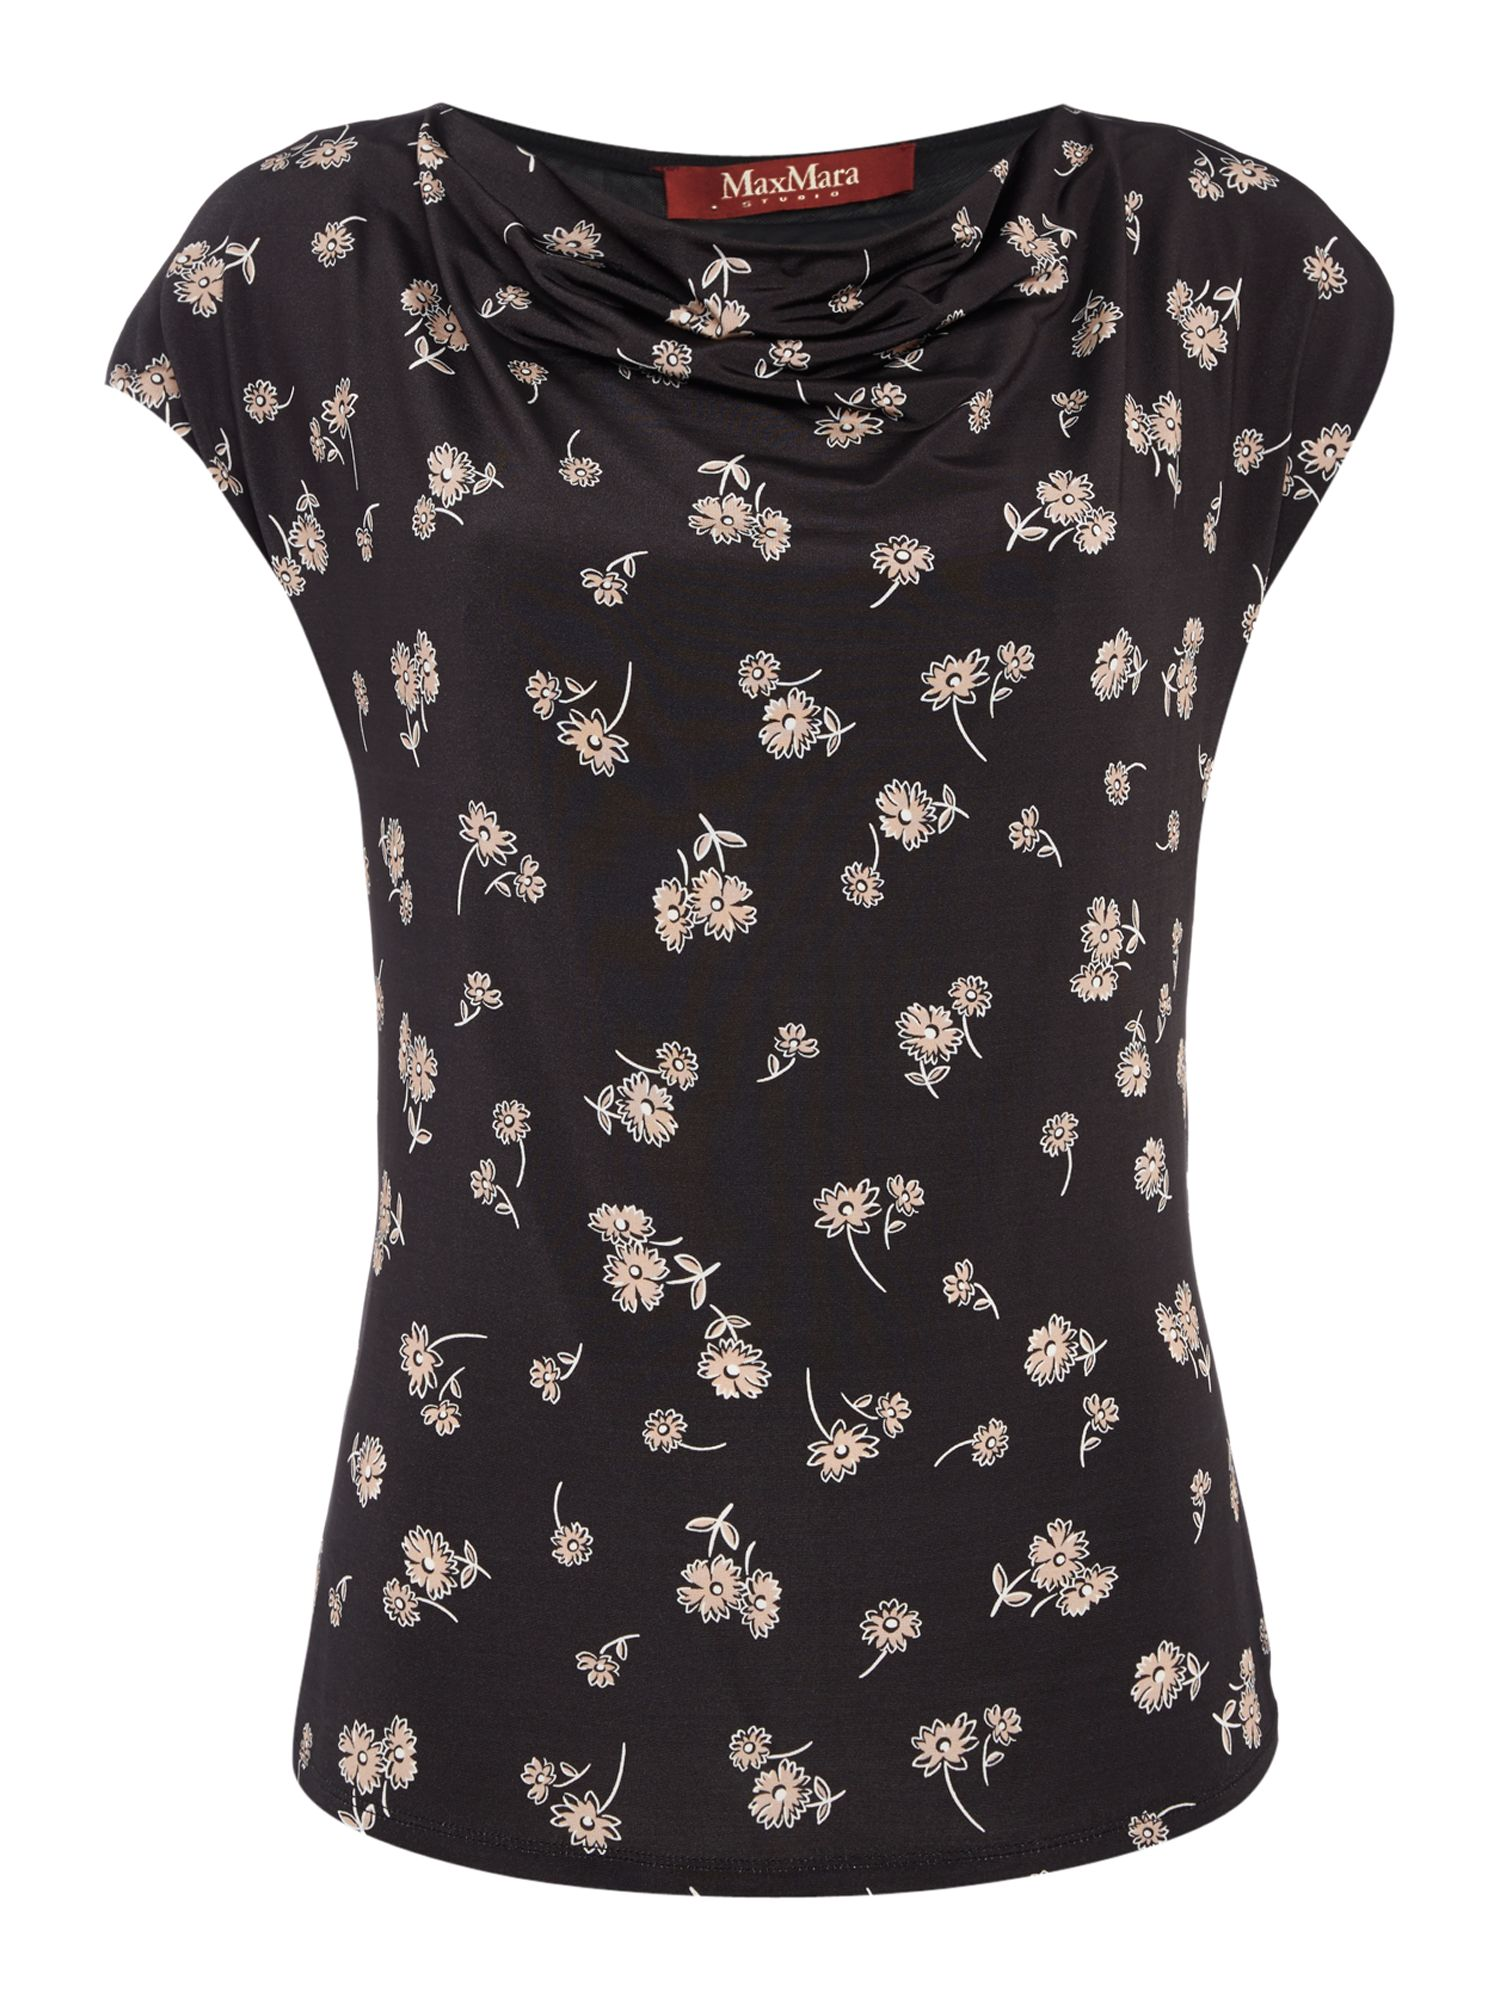 Max Mara Studio GIBERNA cap sleeve printed top with cowl neck, Black